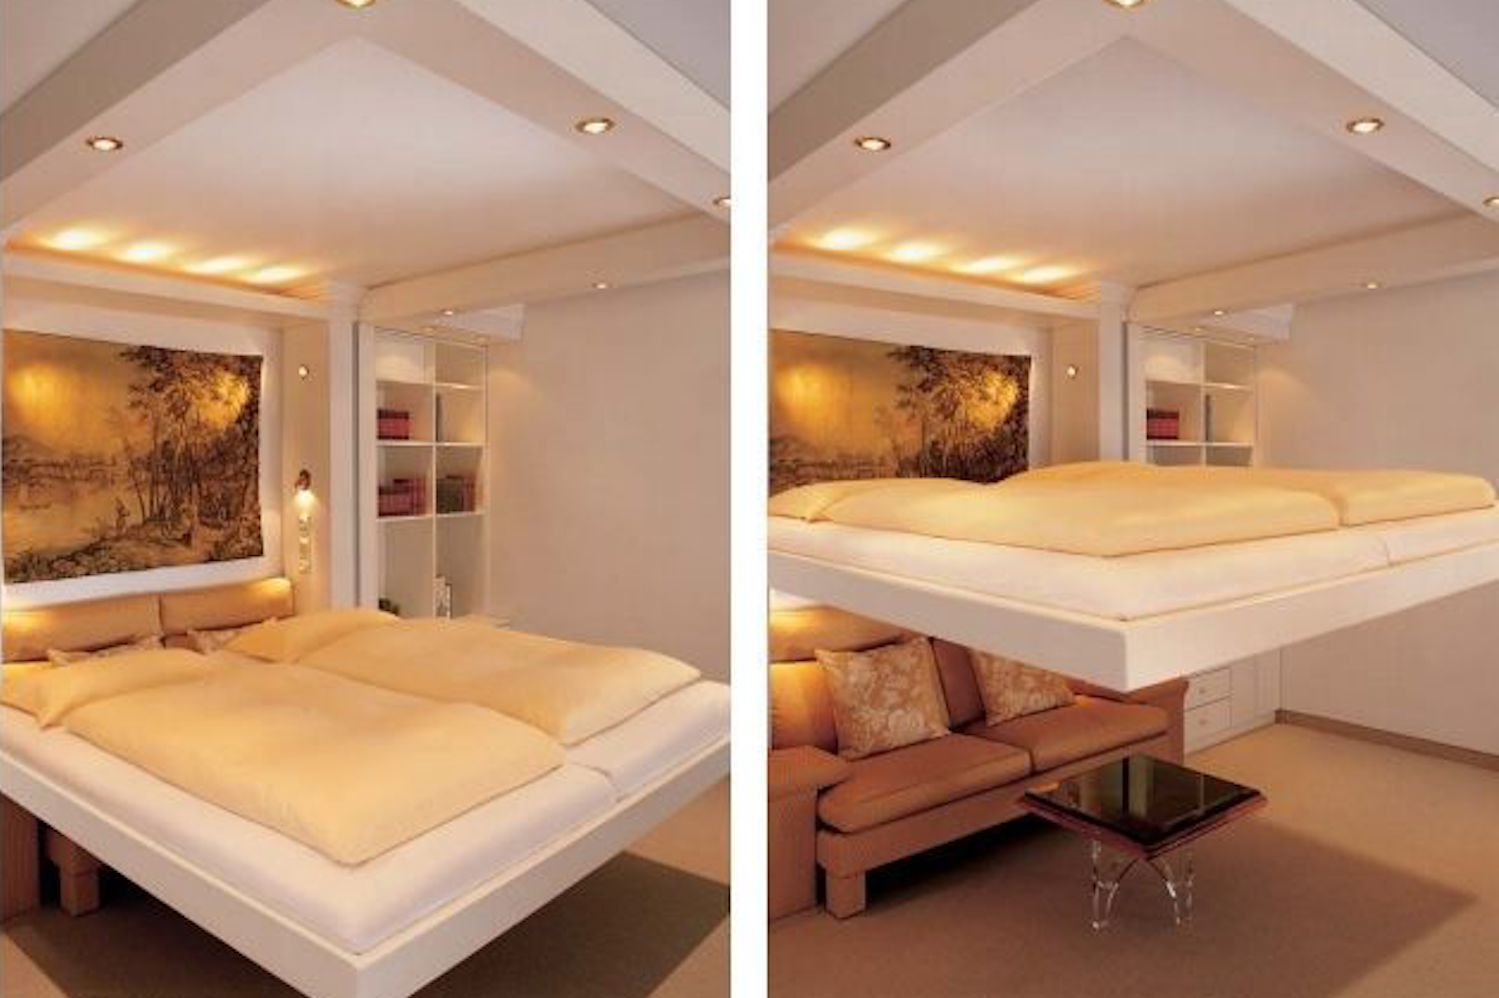 Demonstration of a bed lifting off the ground towards the ceiling for storage